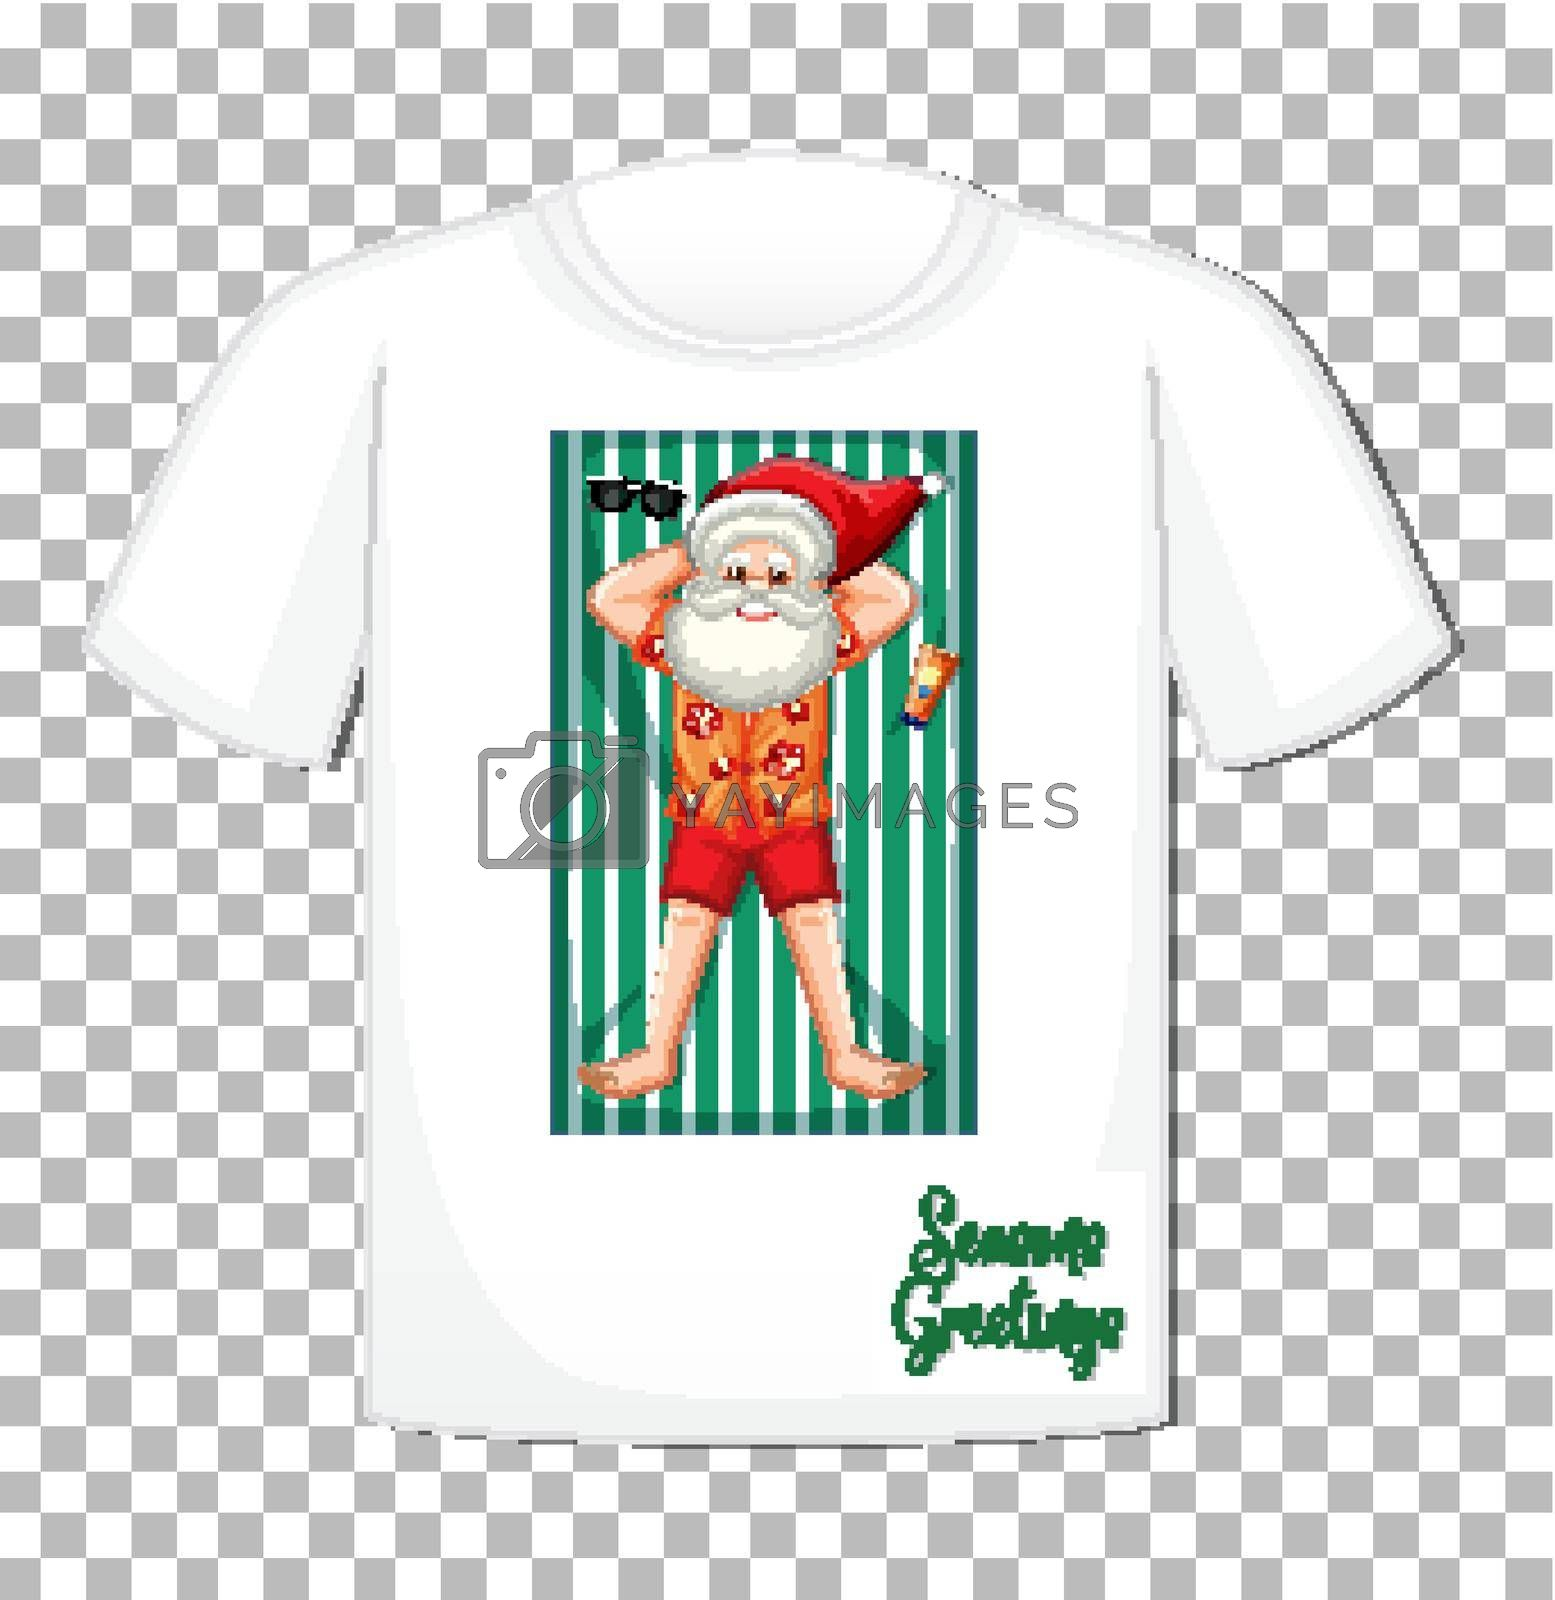 Santa Claus in summer costume cartoon character on t-shirt isolated on transparent background illustration